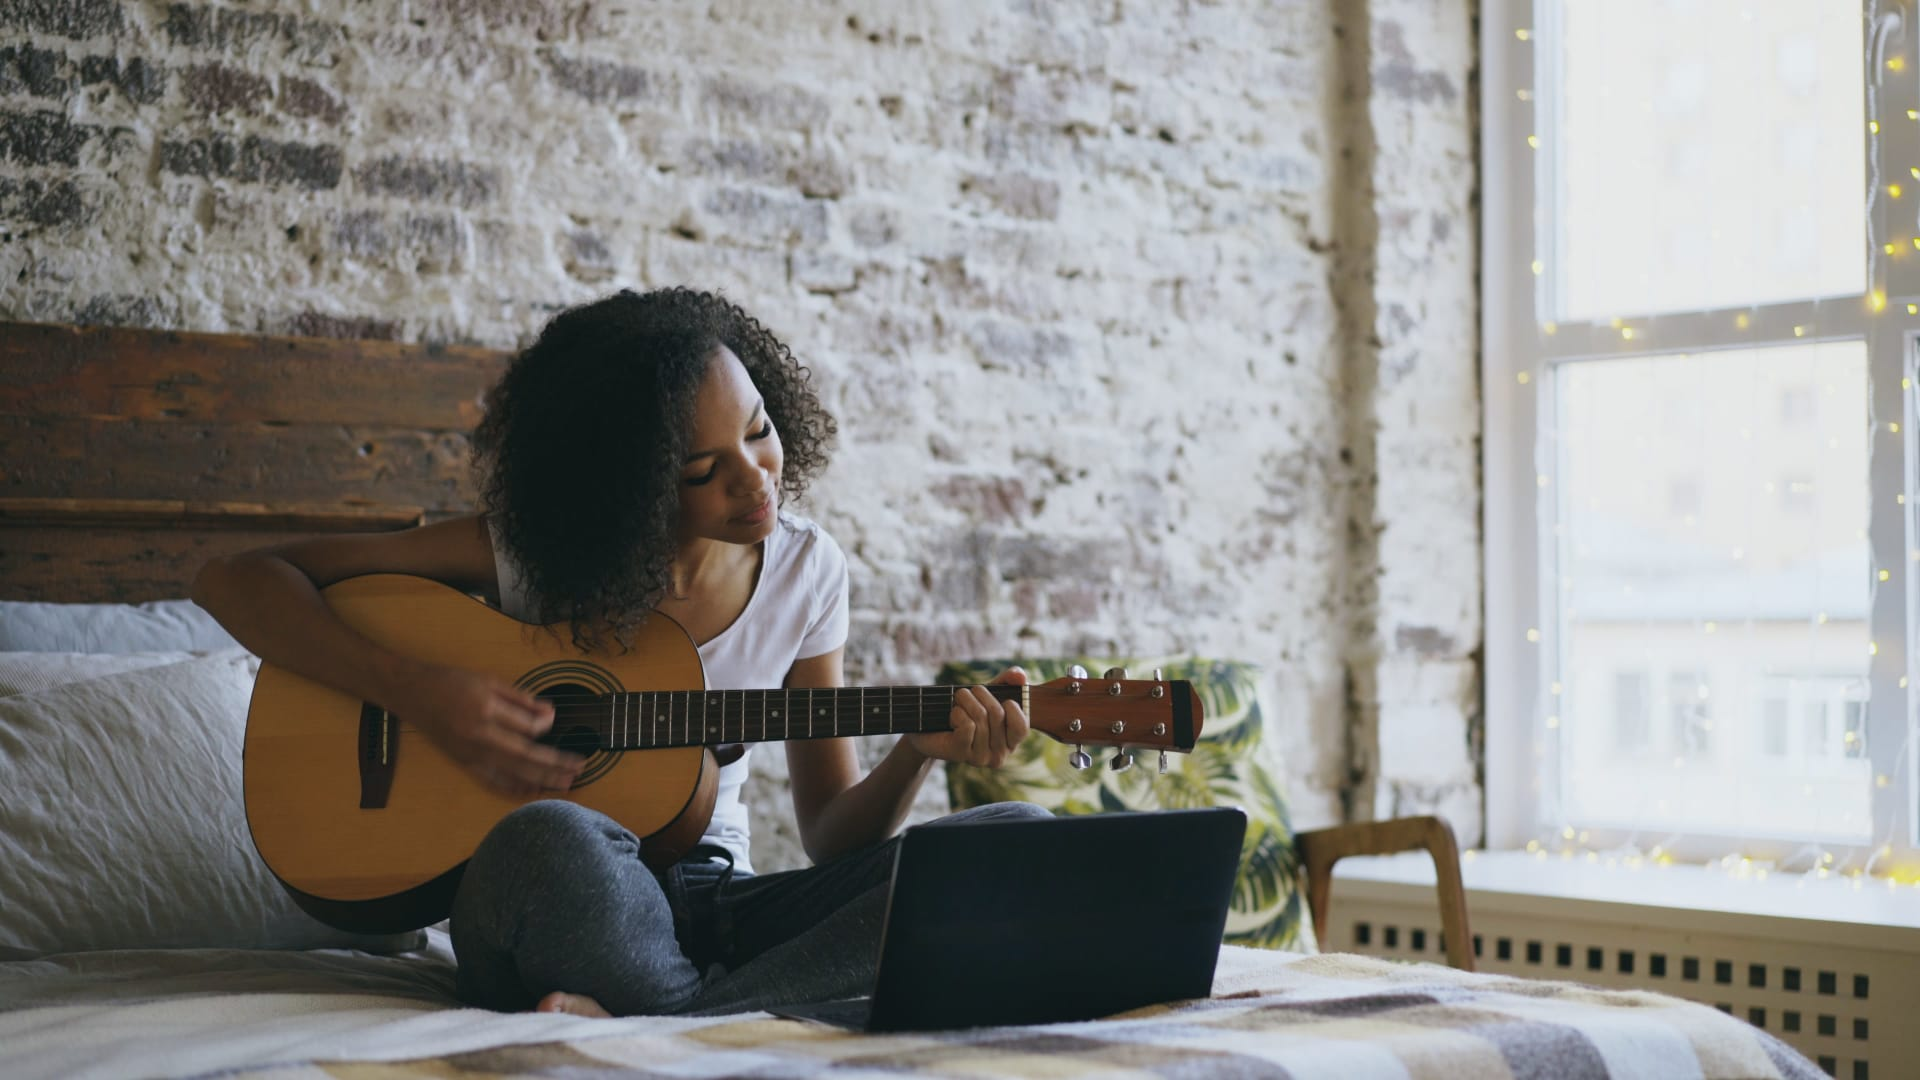 Girl playing a guitar while sitting on a bed